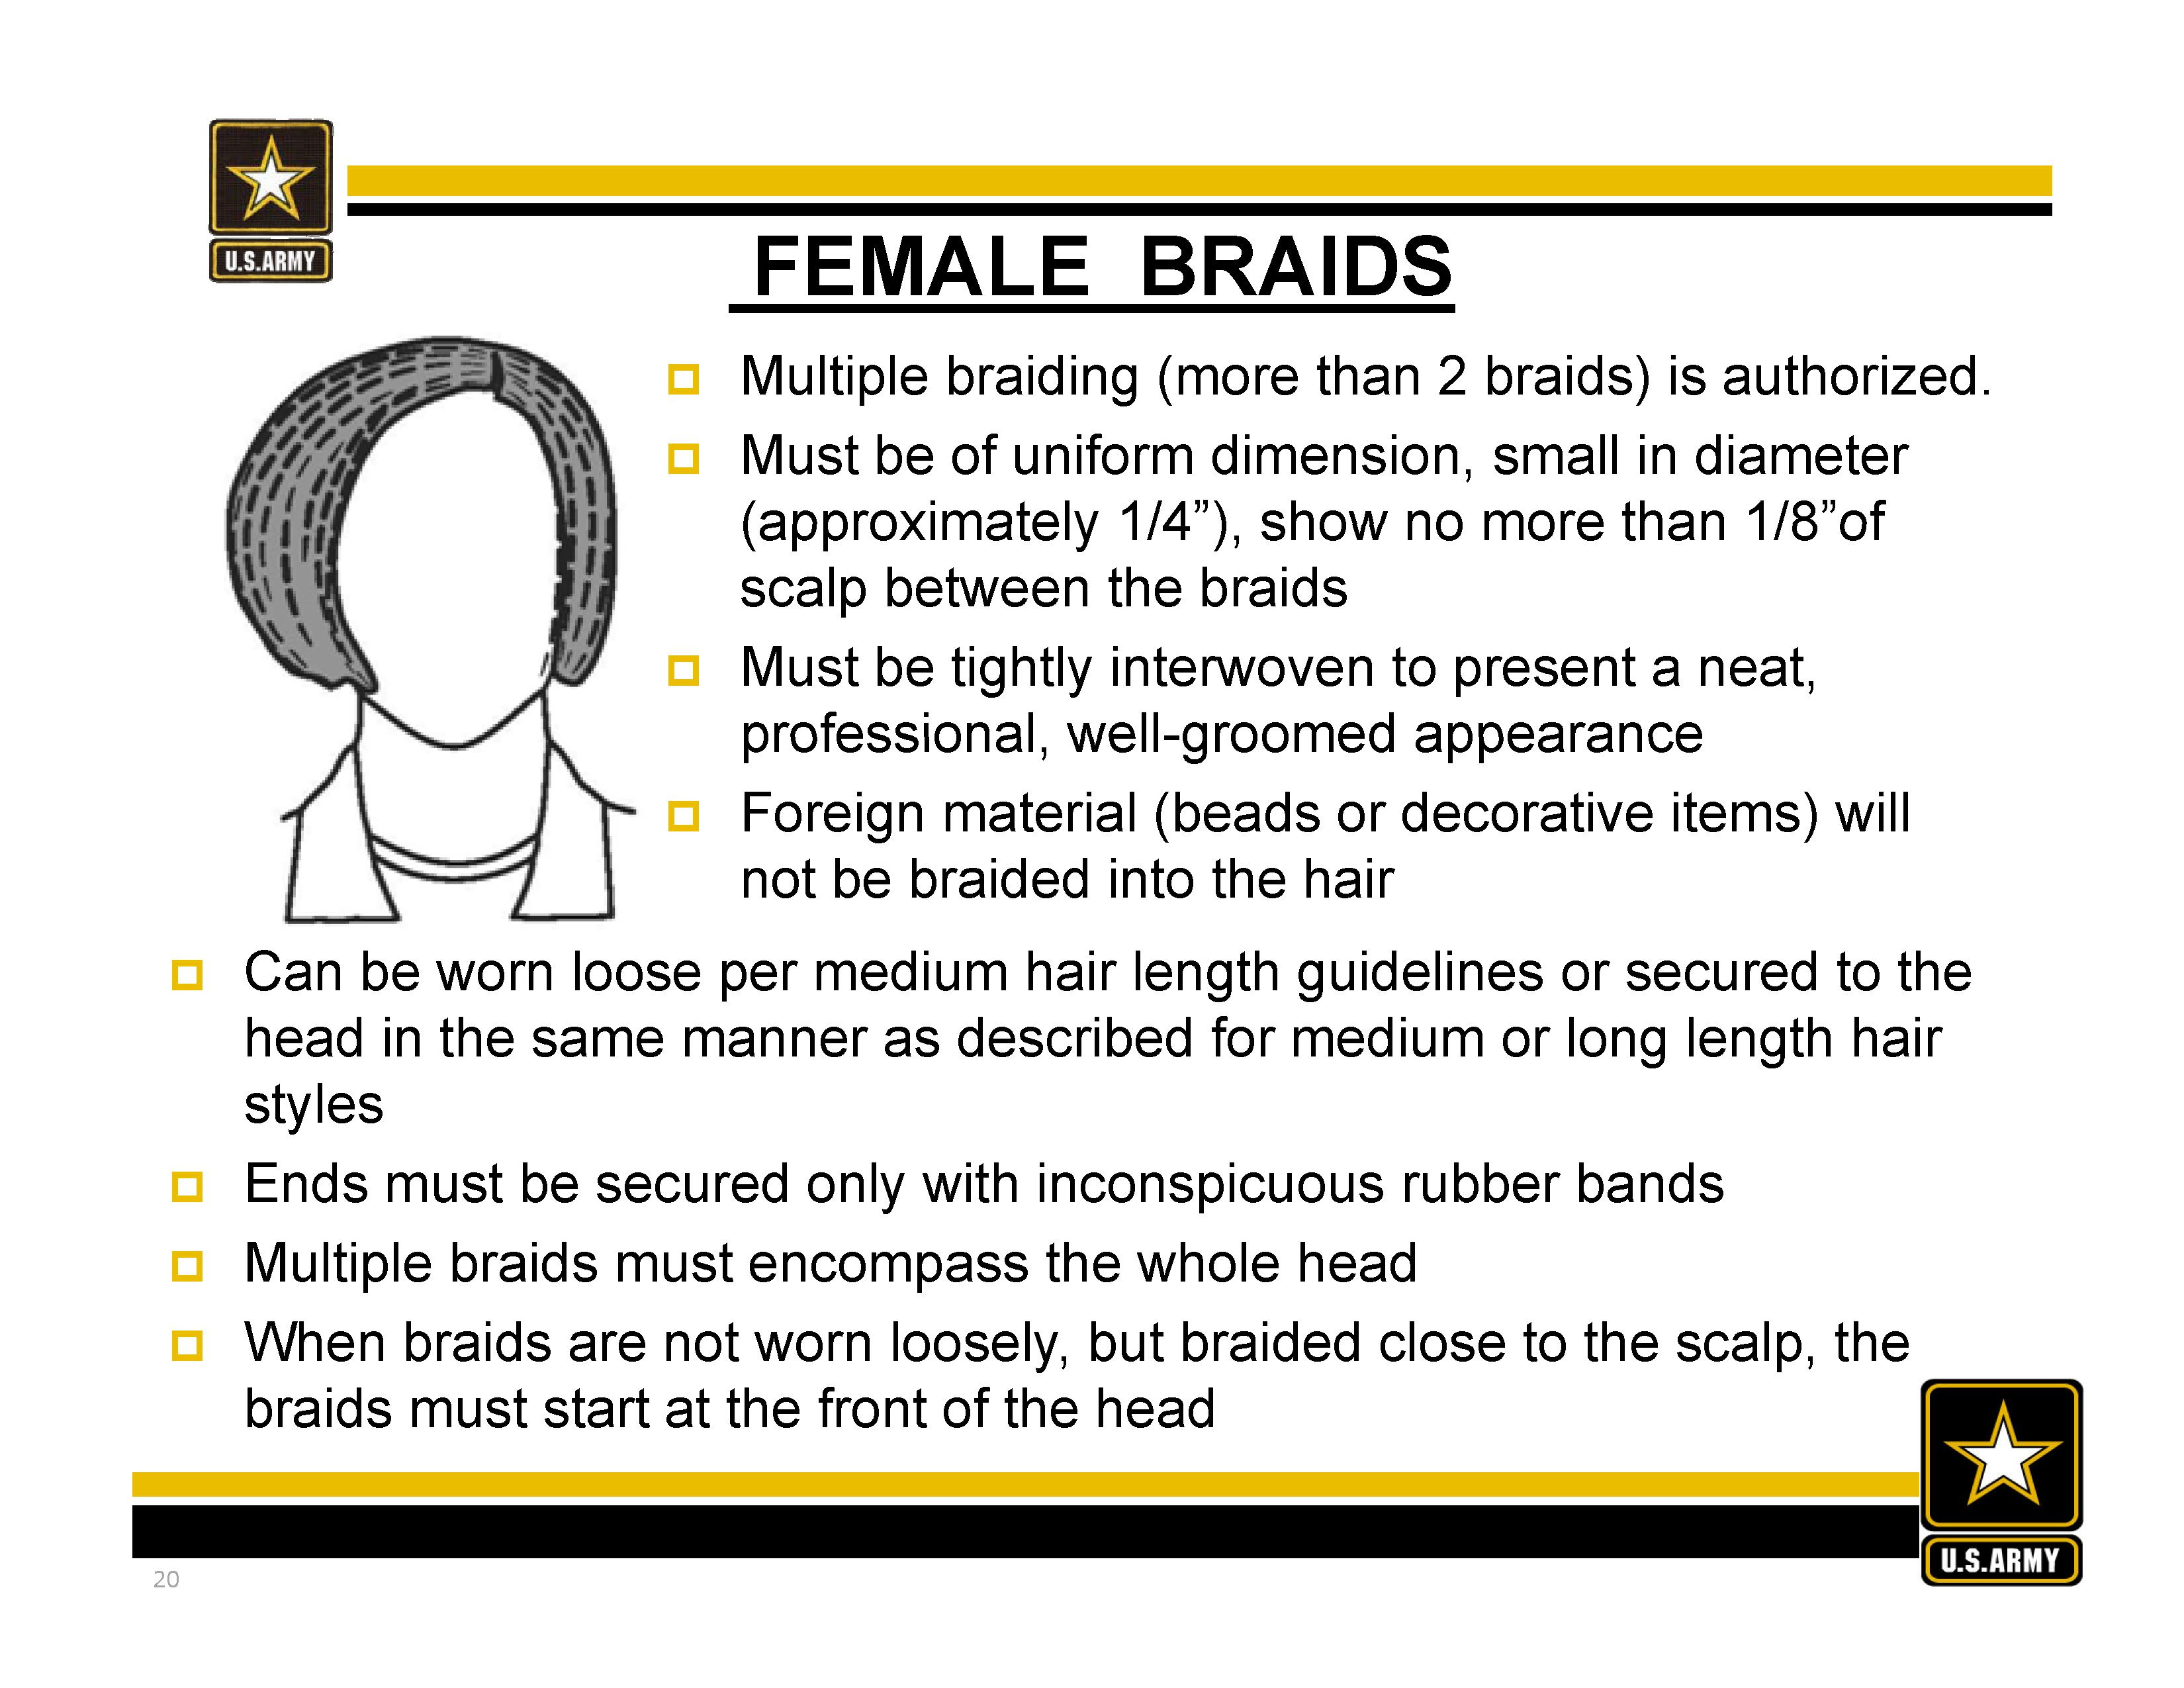 new army hair regulations - ar 670-1 as of 31 march 2014 #braids